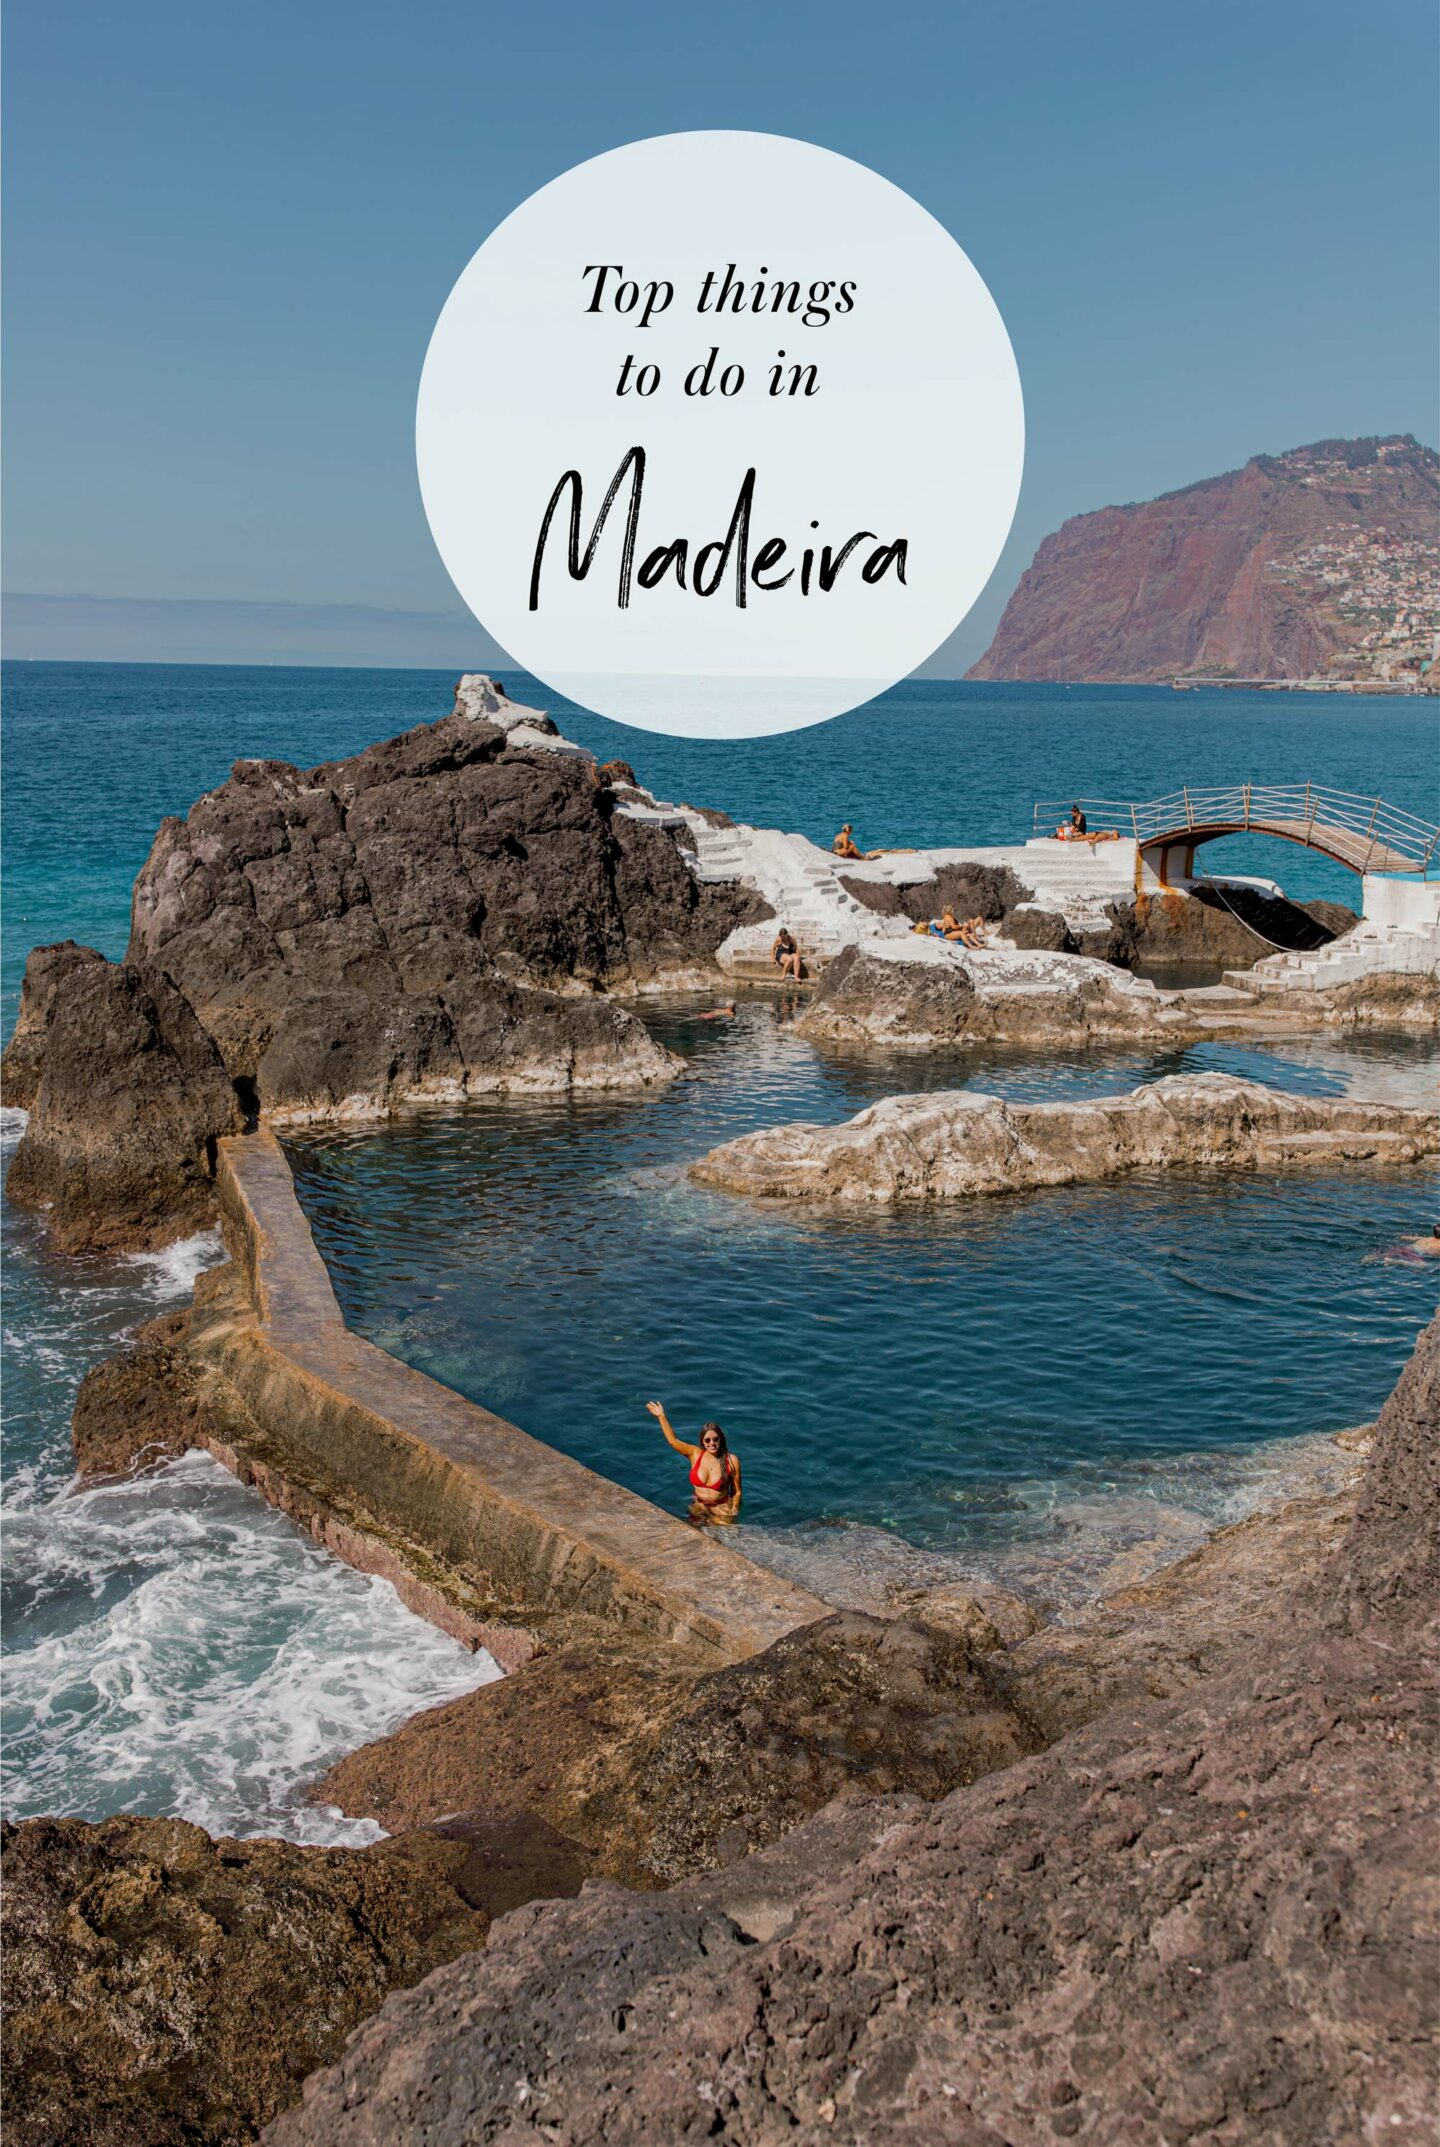 22-Top-things-to-do-in-madeira-Bucket-list--Instagram-Story-Template--kelseyinlondon-Kelsey-Heinrichs--What-to-do-in-madeira--Where-to-go-in-madeira-top-places-in-madeira-